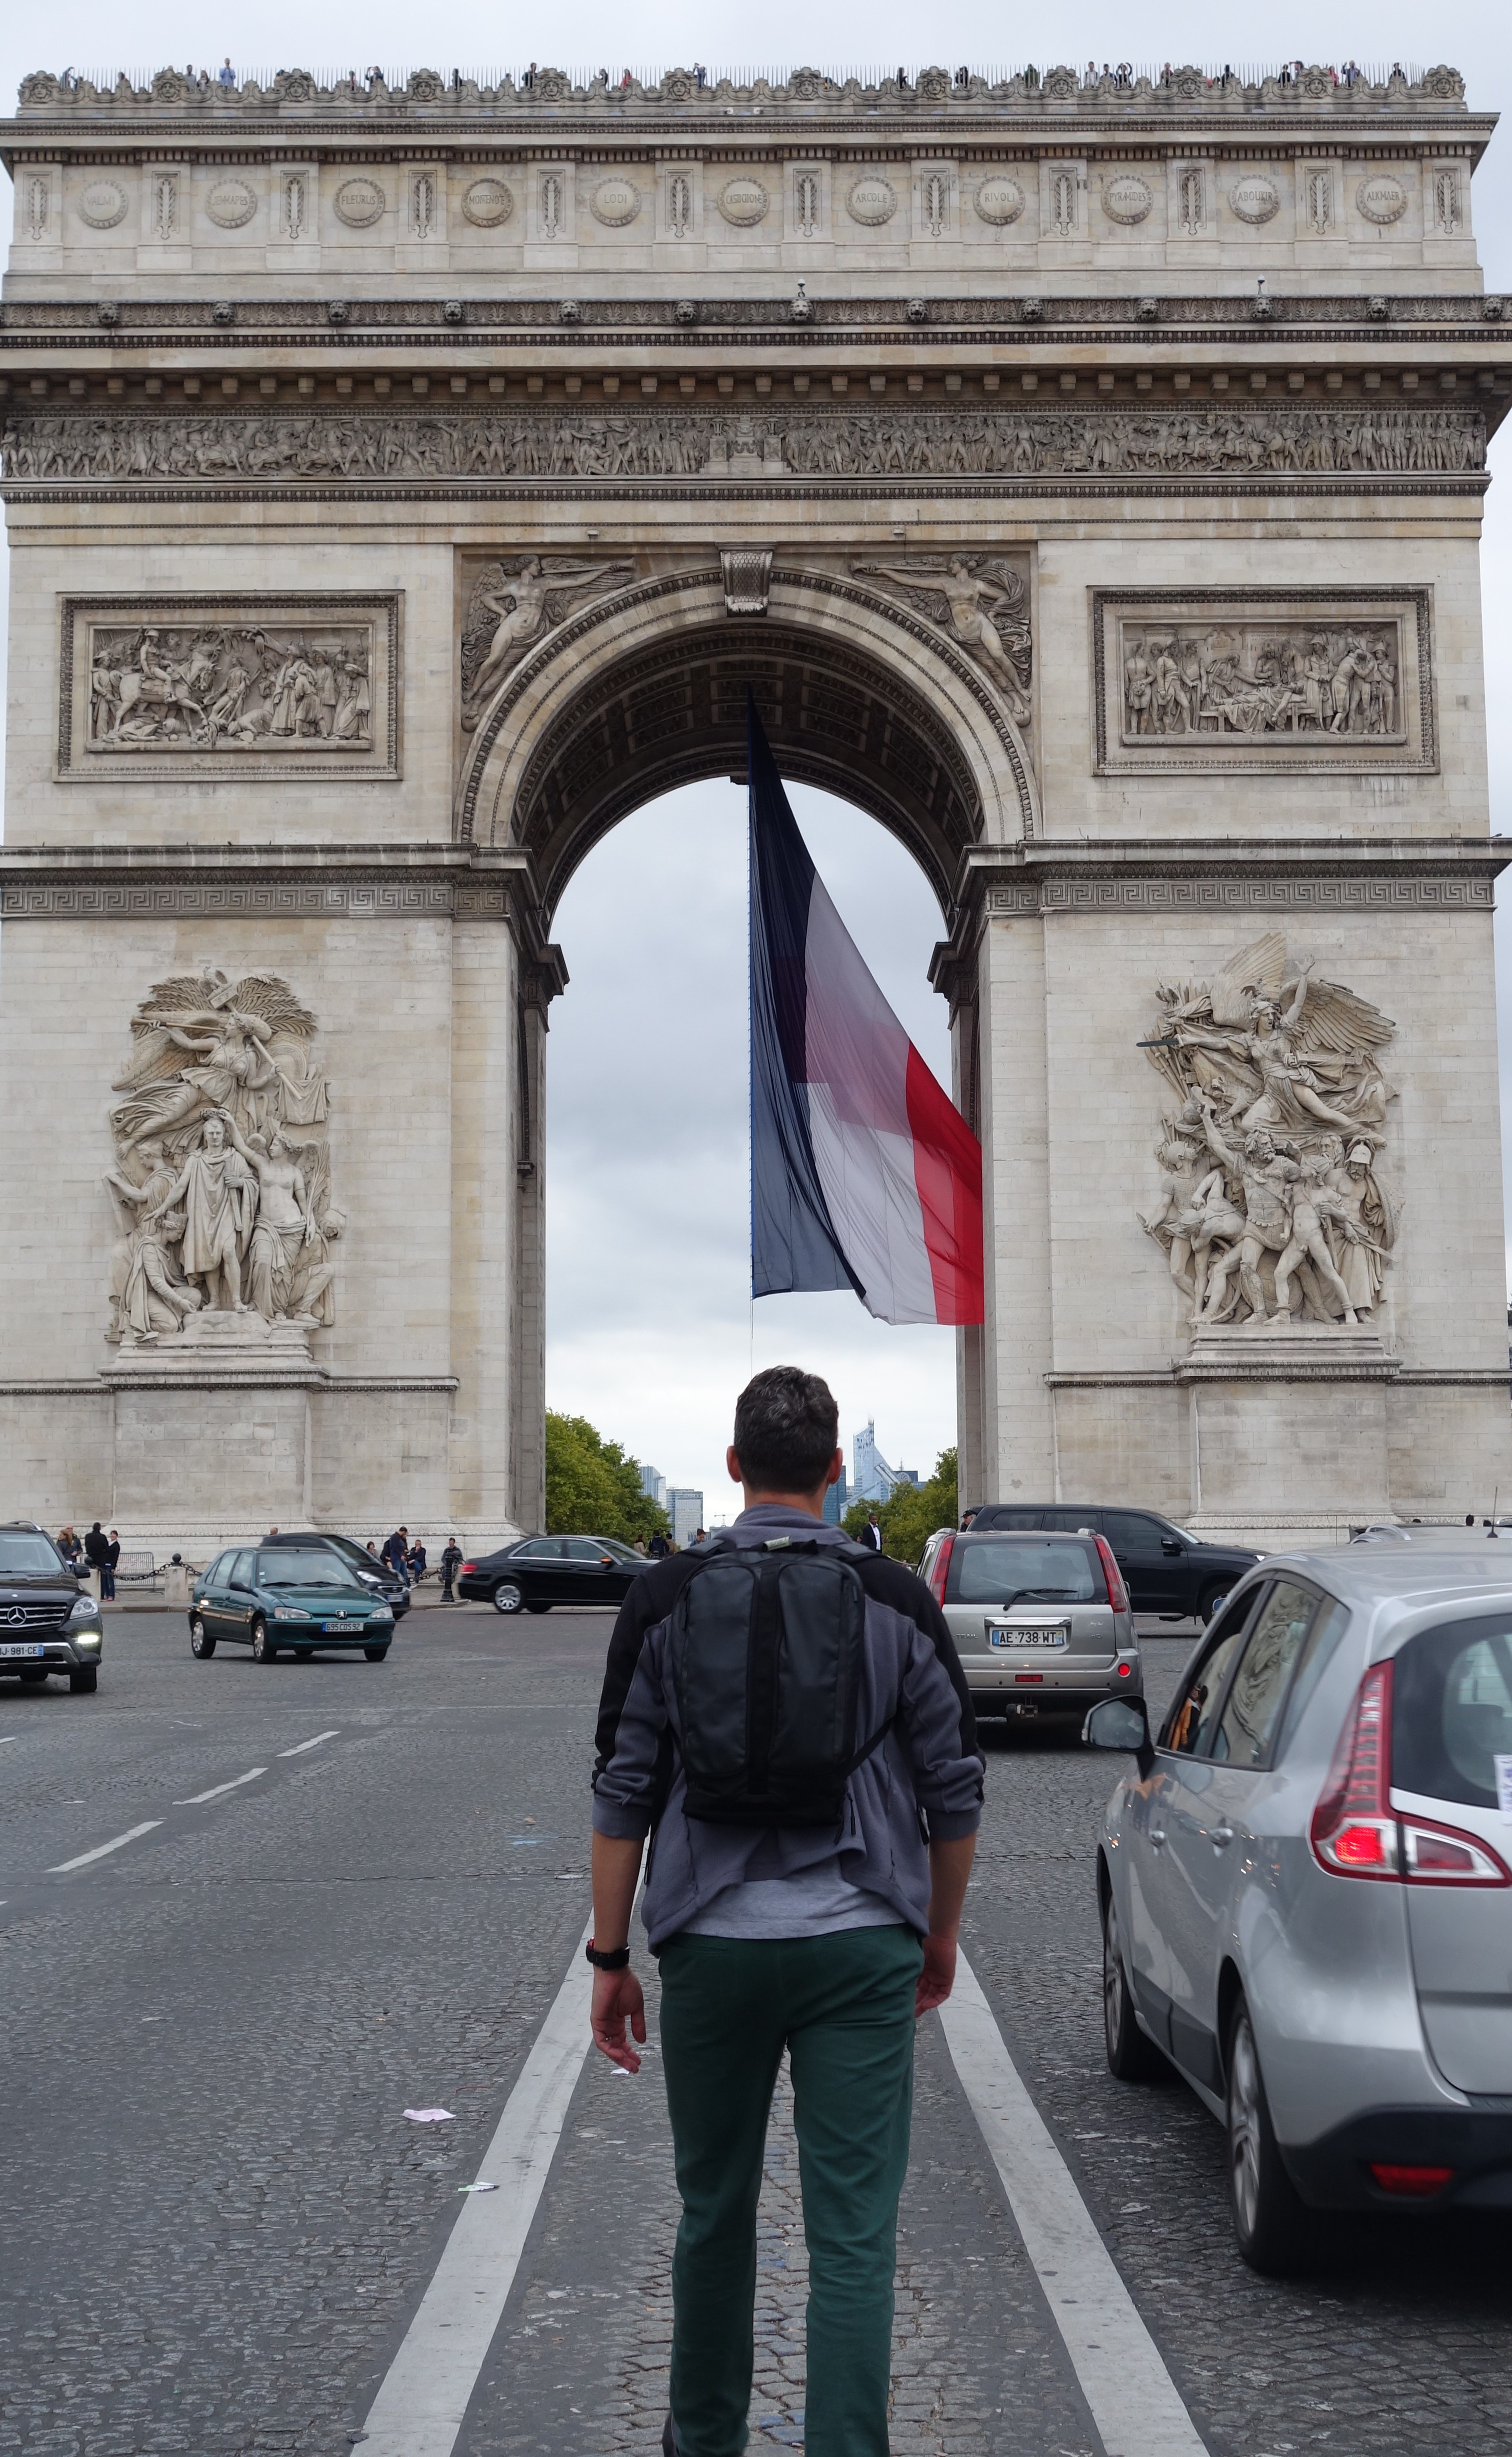 Braving the traffic-heavy Champs-Elysees, in front of the majestic Arc de Triomphe.